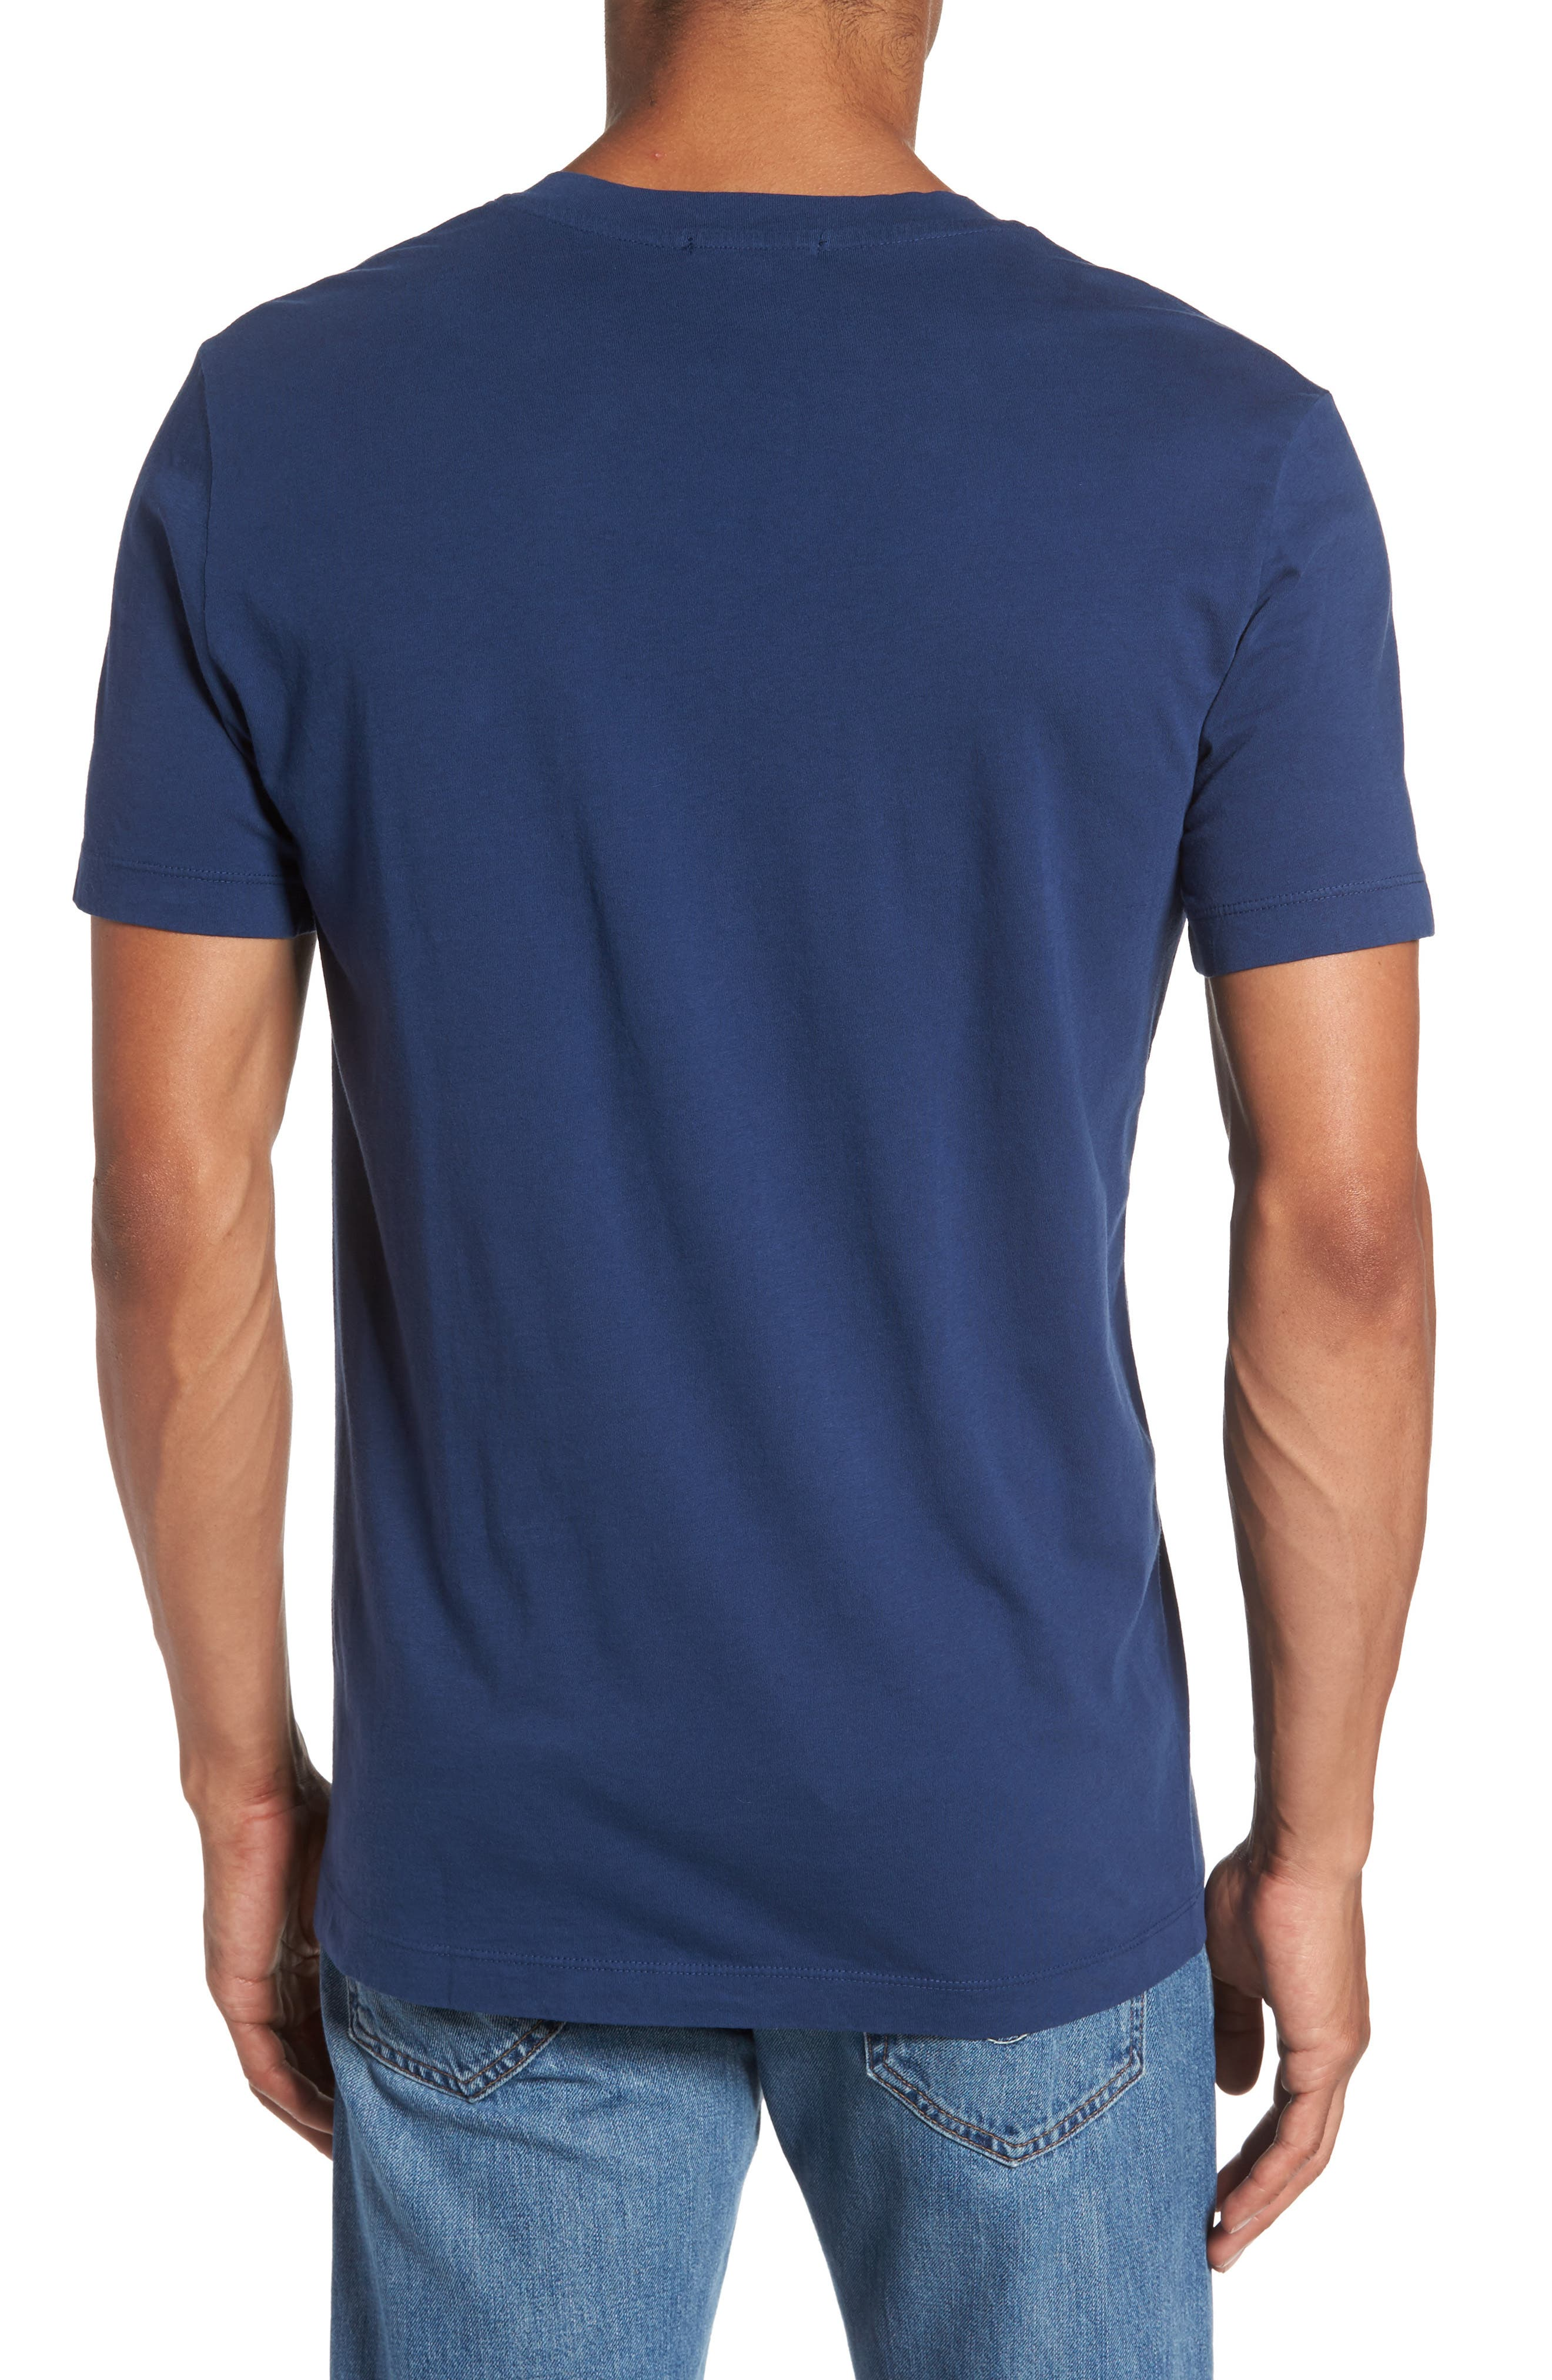 Alternate Image 2  - James Perse Short Sleeve V-Neck T-Shirt